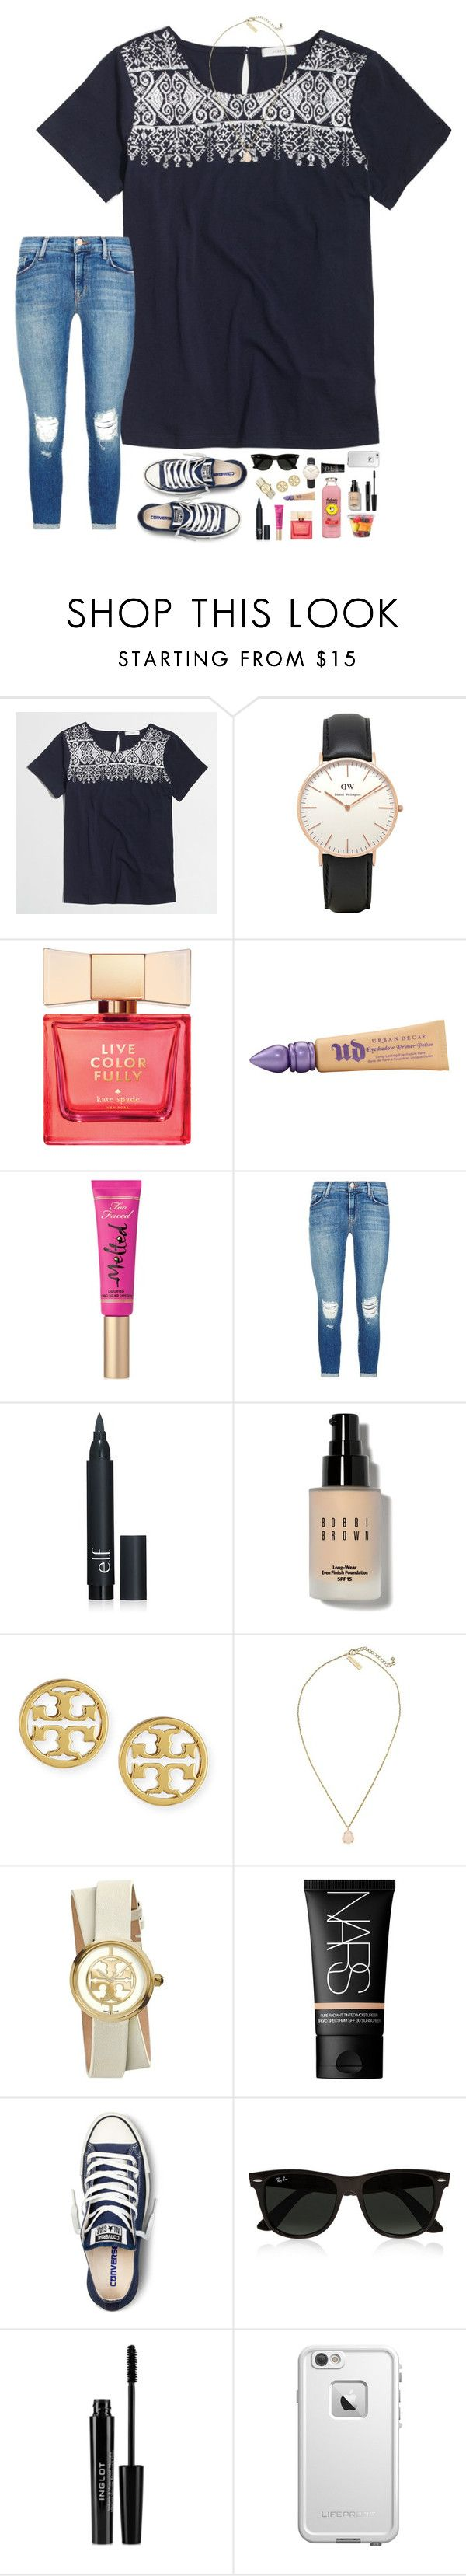 """Sorry I haven't posted in a while!"" by hopemarlee ❤ liked on Polyvore featuring J.Crew, Topshop, Kate Spade, Urban Decay, Too Faced Cosmetics, J Brand, Bobbi Brown Cosmetics, Tory Burch, Kendra Scott and NARS Cosmetics"